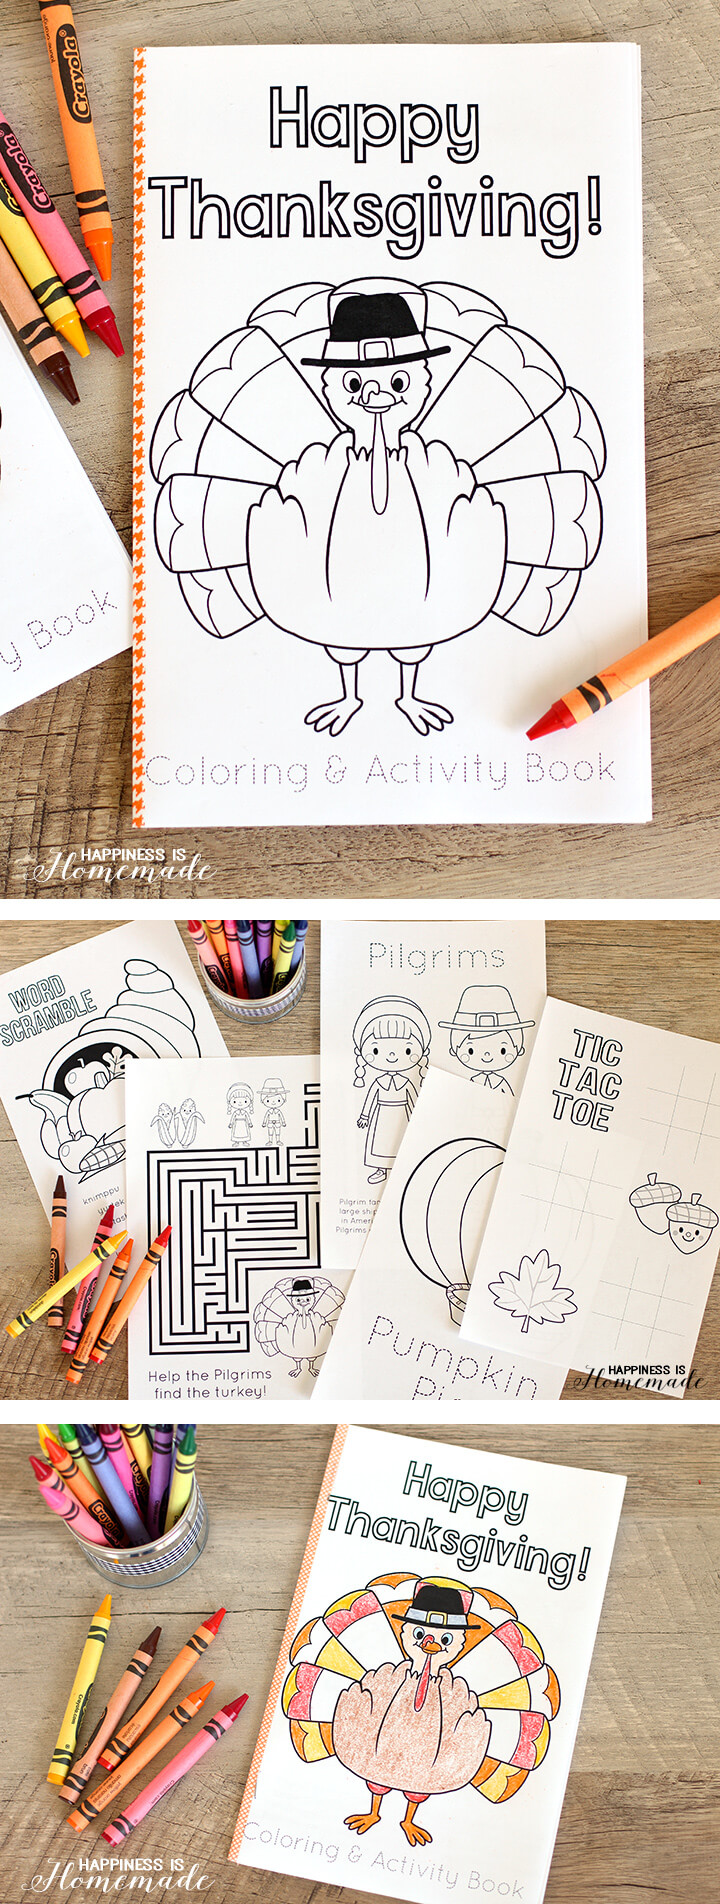 Thanksgiving Coloring amp Activity